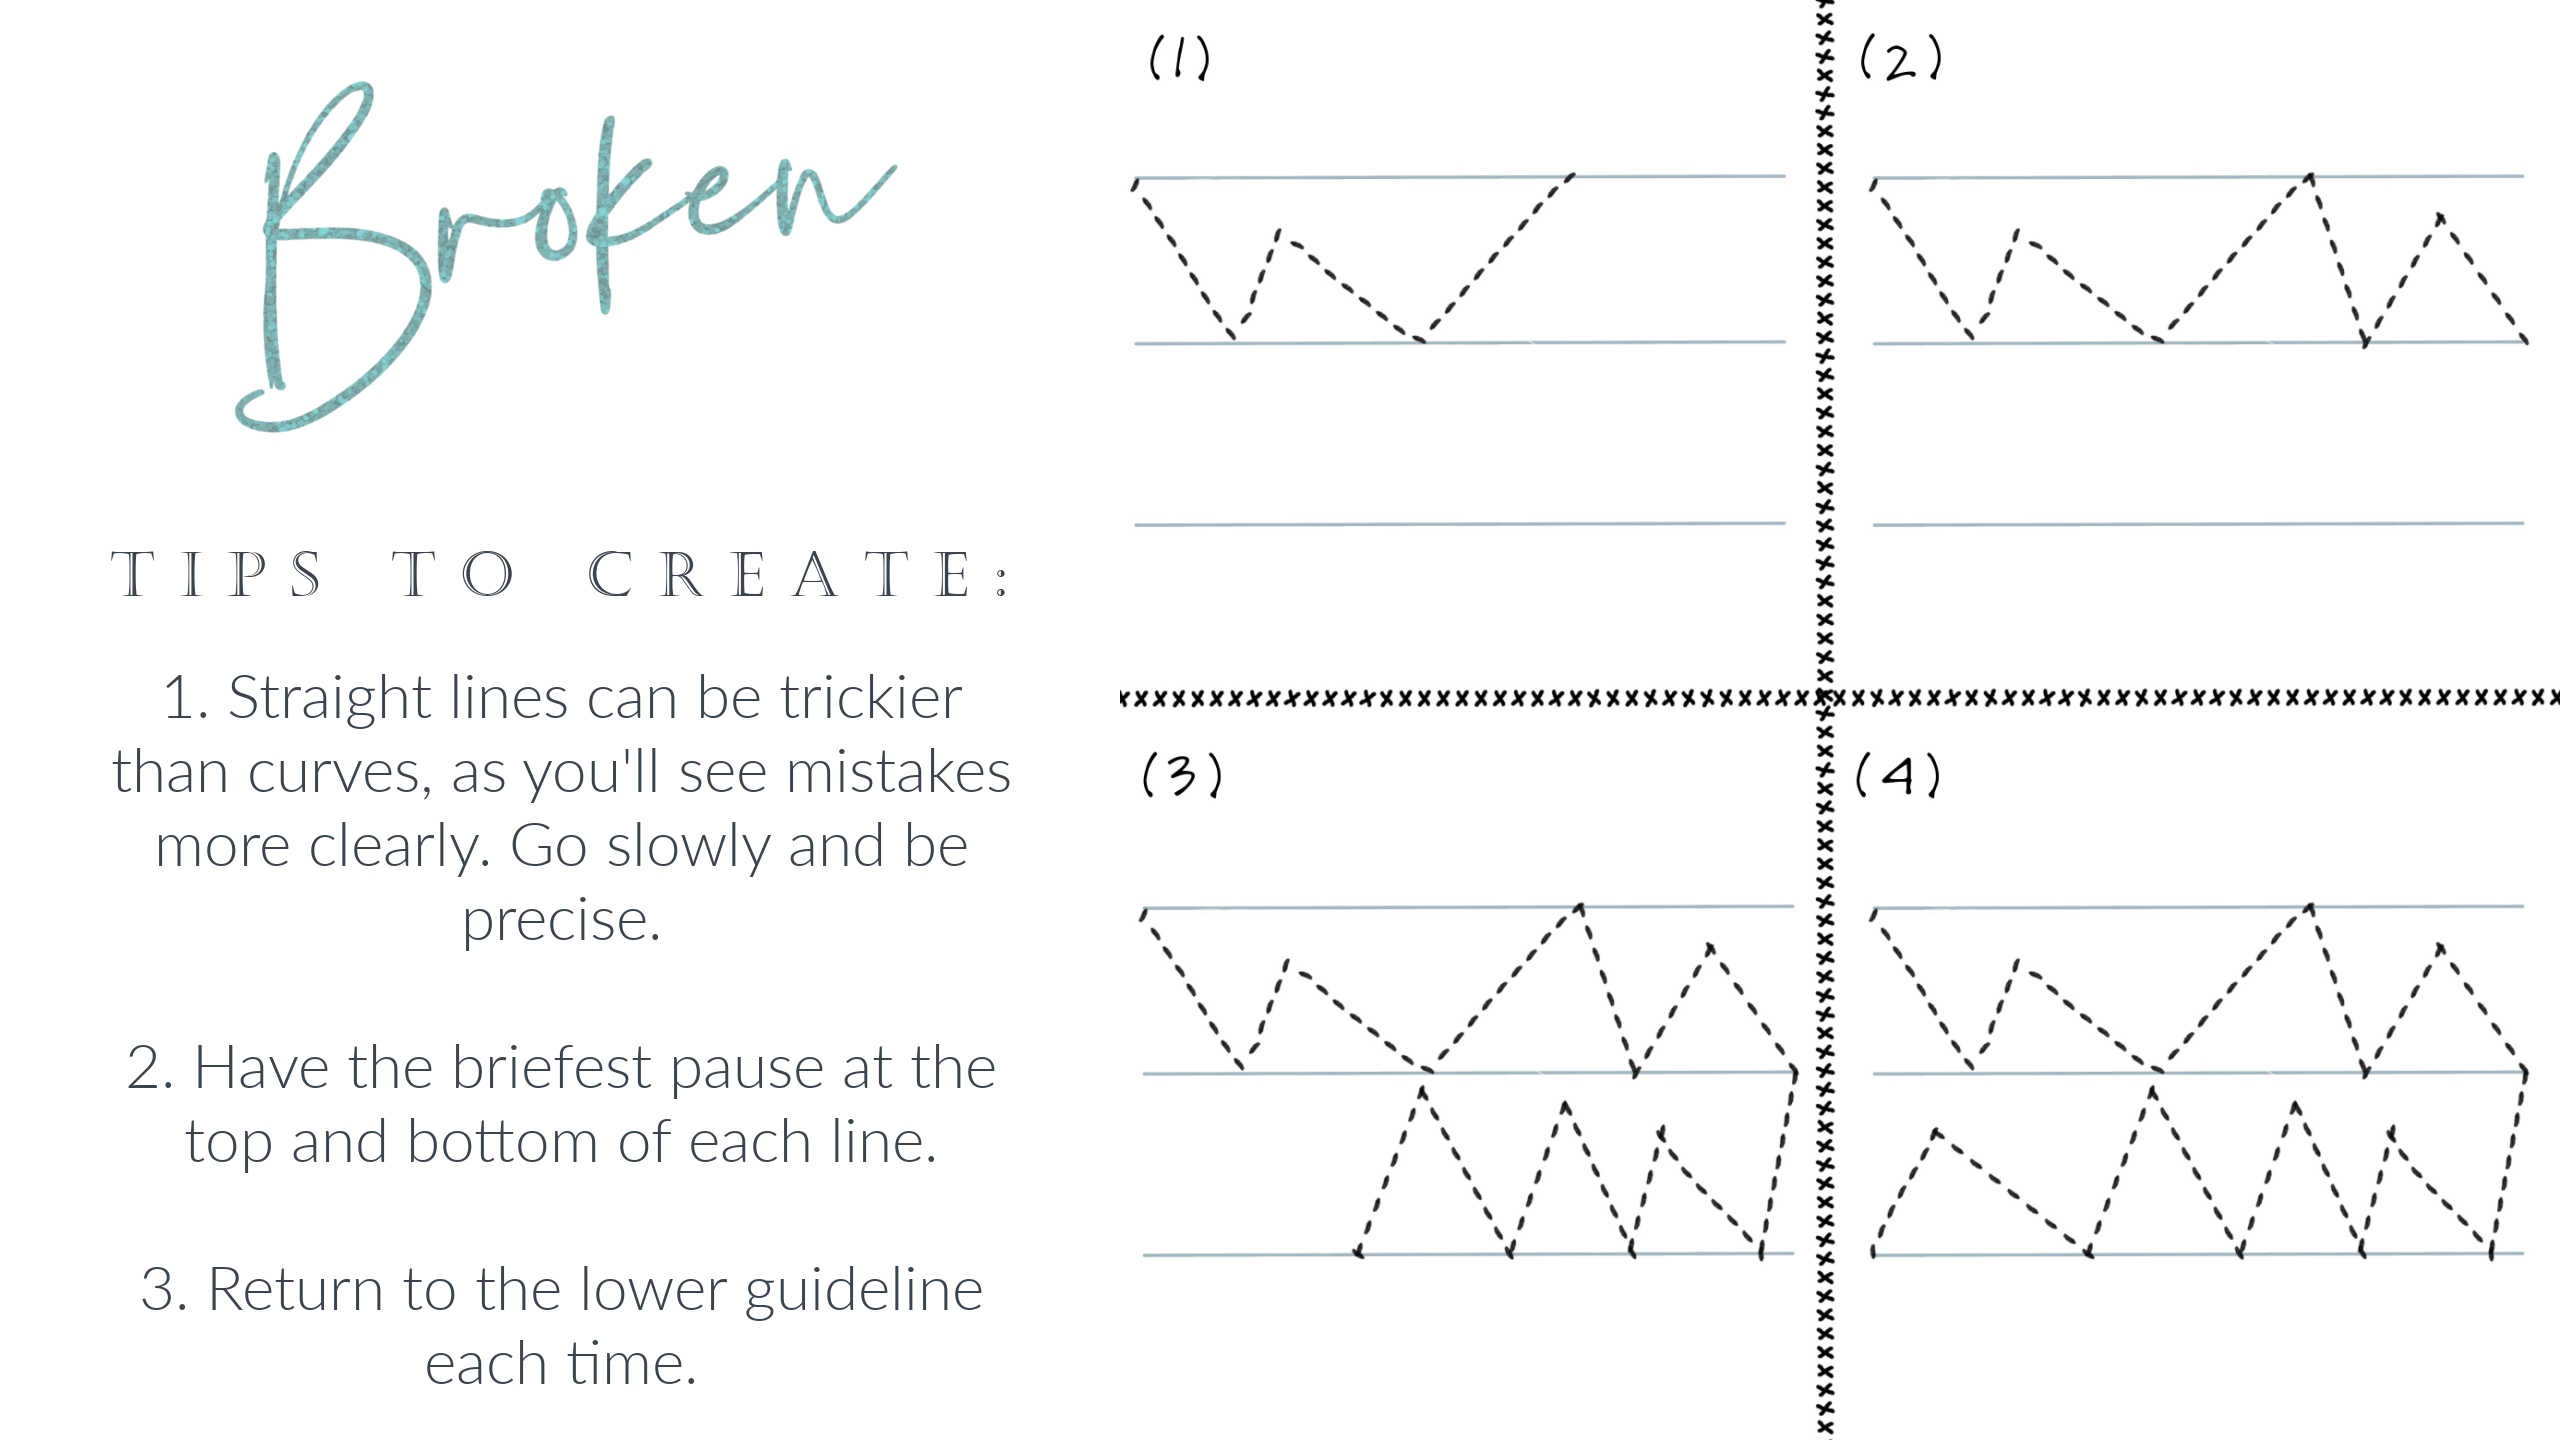 Let's break down the three key steps to creating zig-zag free motion quilting lines. We'll start at the beginning, from the basics like machine set-up and thread type, and move into the steps needed to create this free motion design. After watching the how-to video, you'll walk away comfortable to create this design on your own!